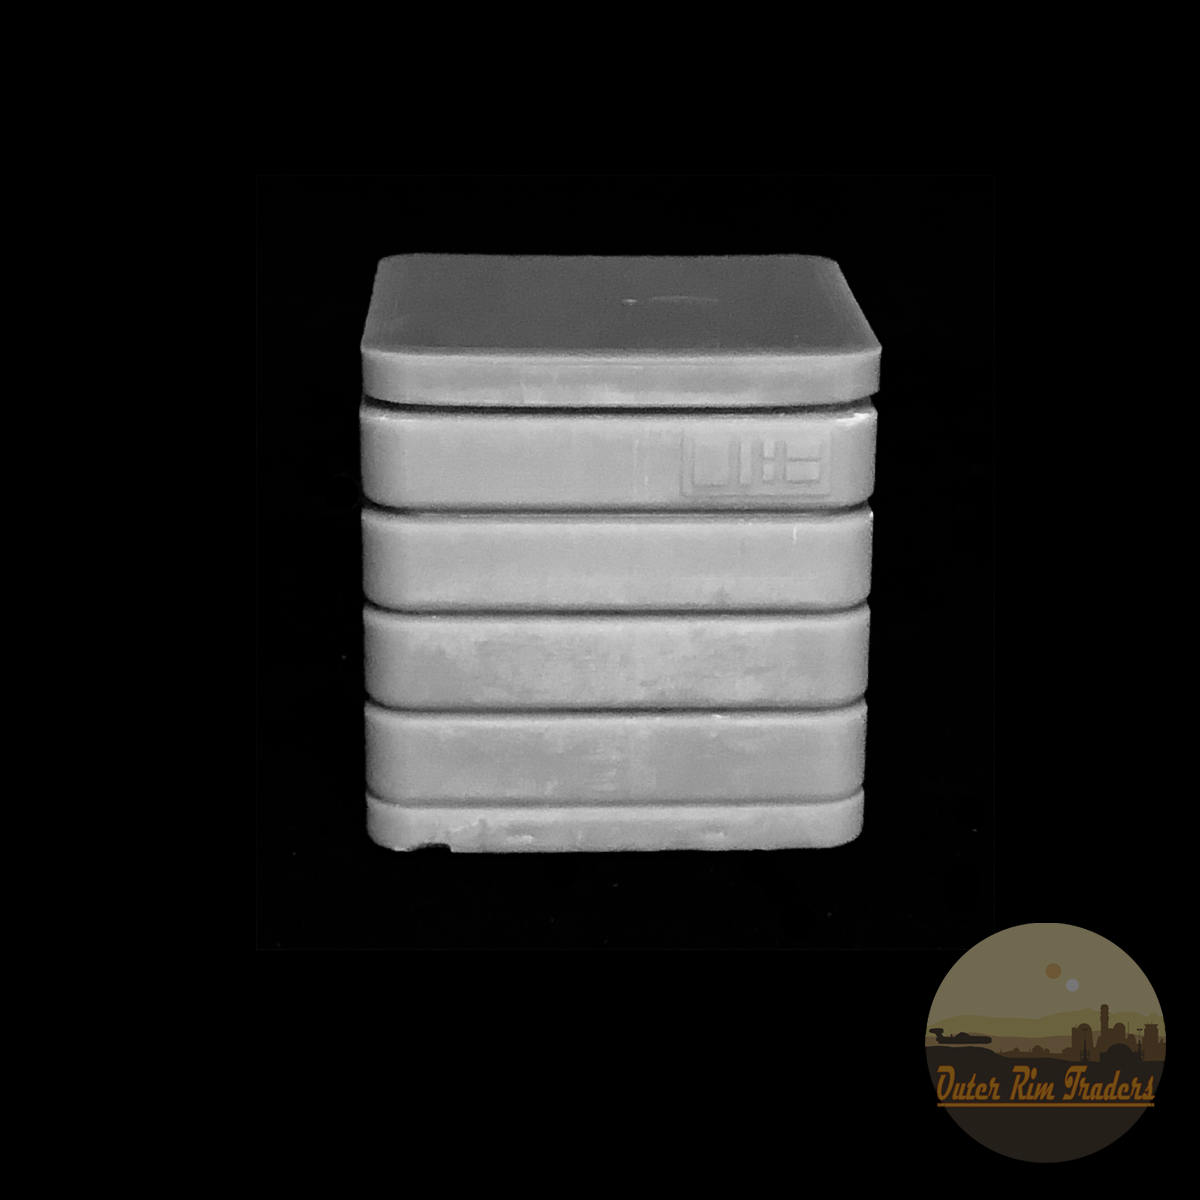 Image of Rebel container with lid by Corey Fryia